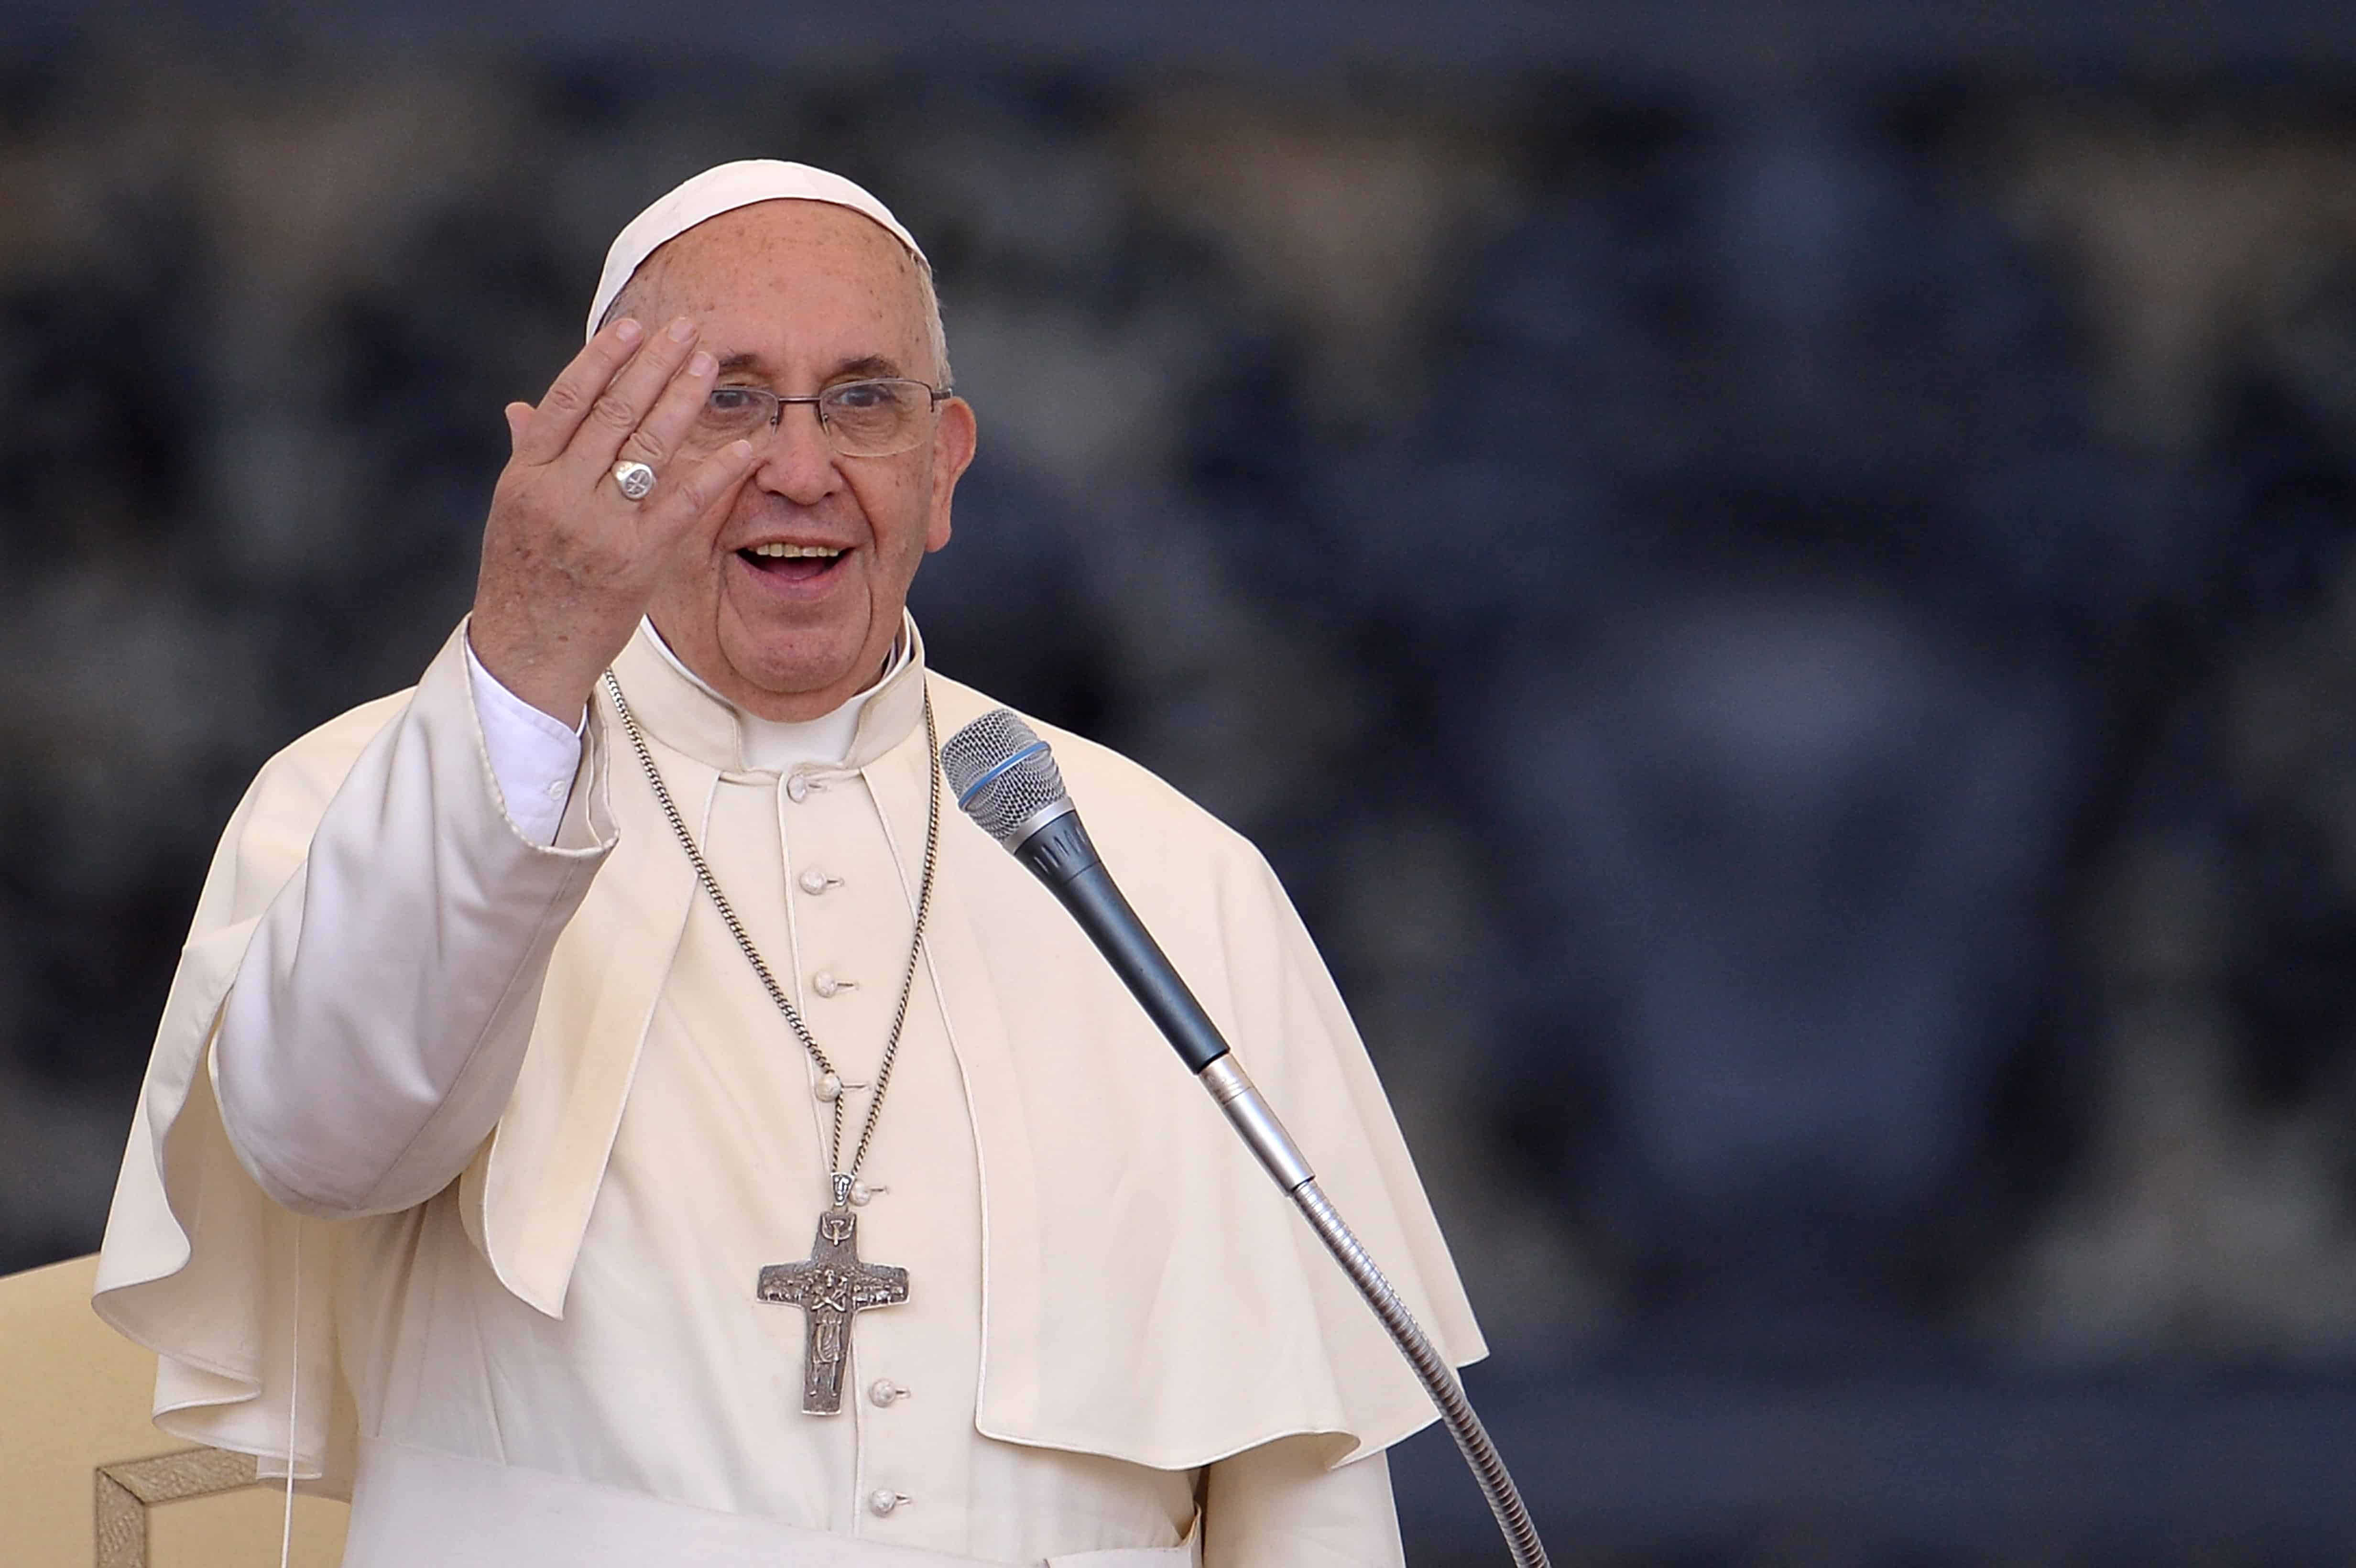 Pope Francis addresses participants at the Convention of Rome Diocese at St. Peter's Square on June 14, 2015 at the Vatican.